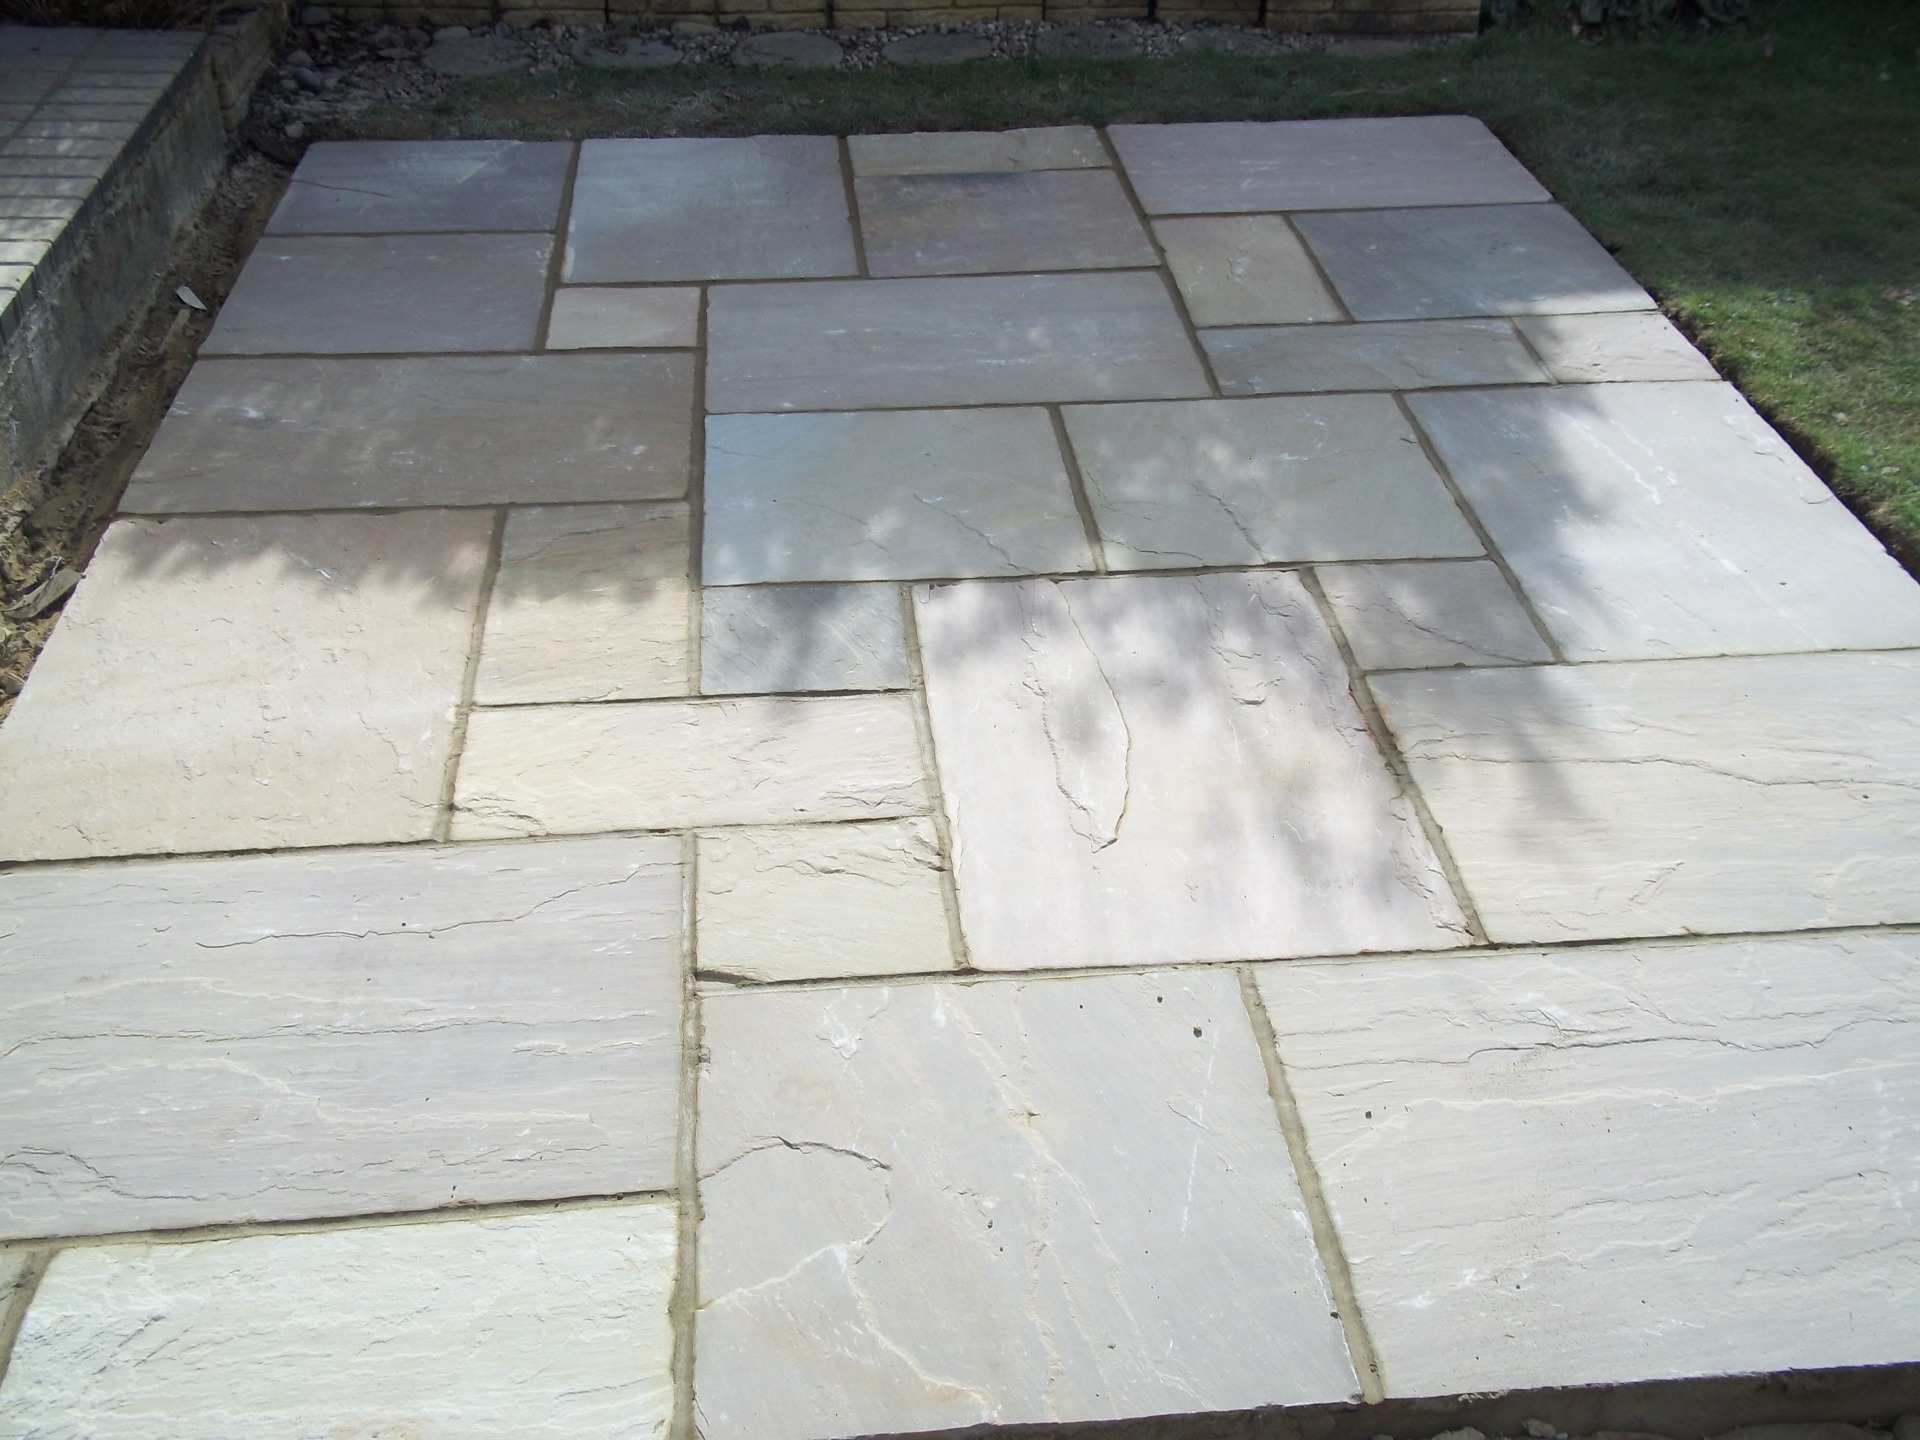 York paving patio.